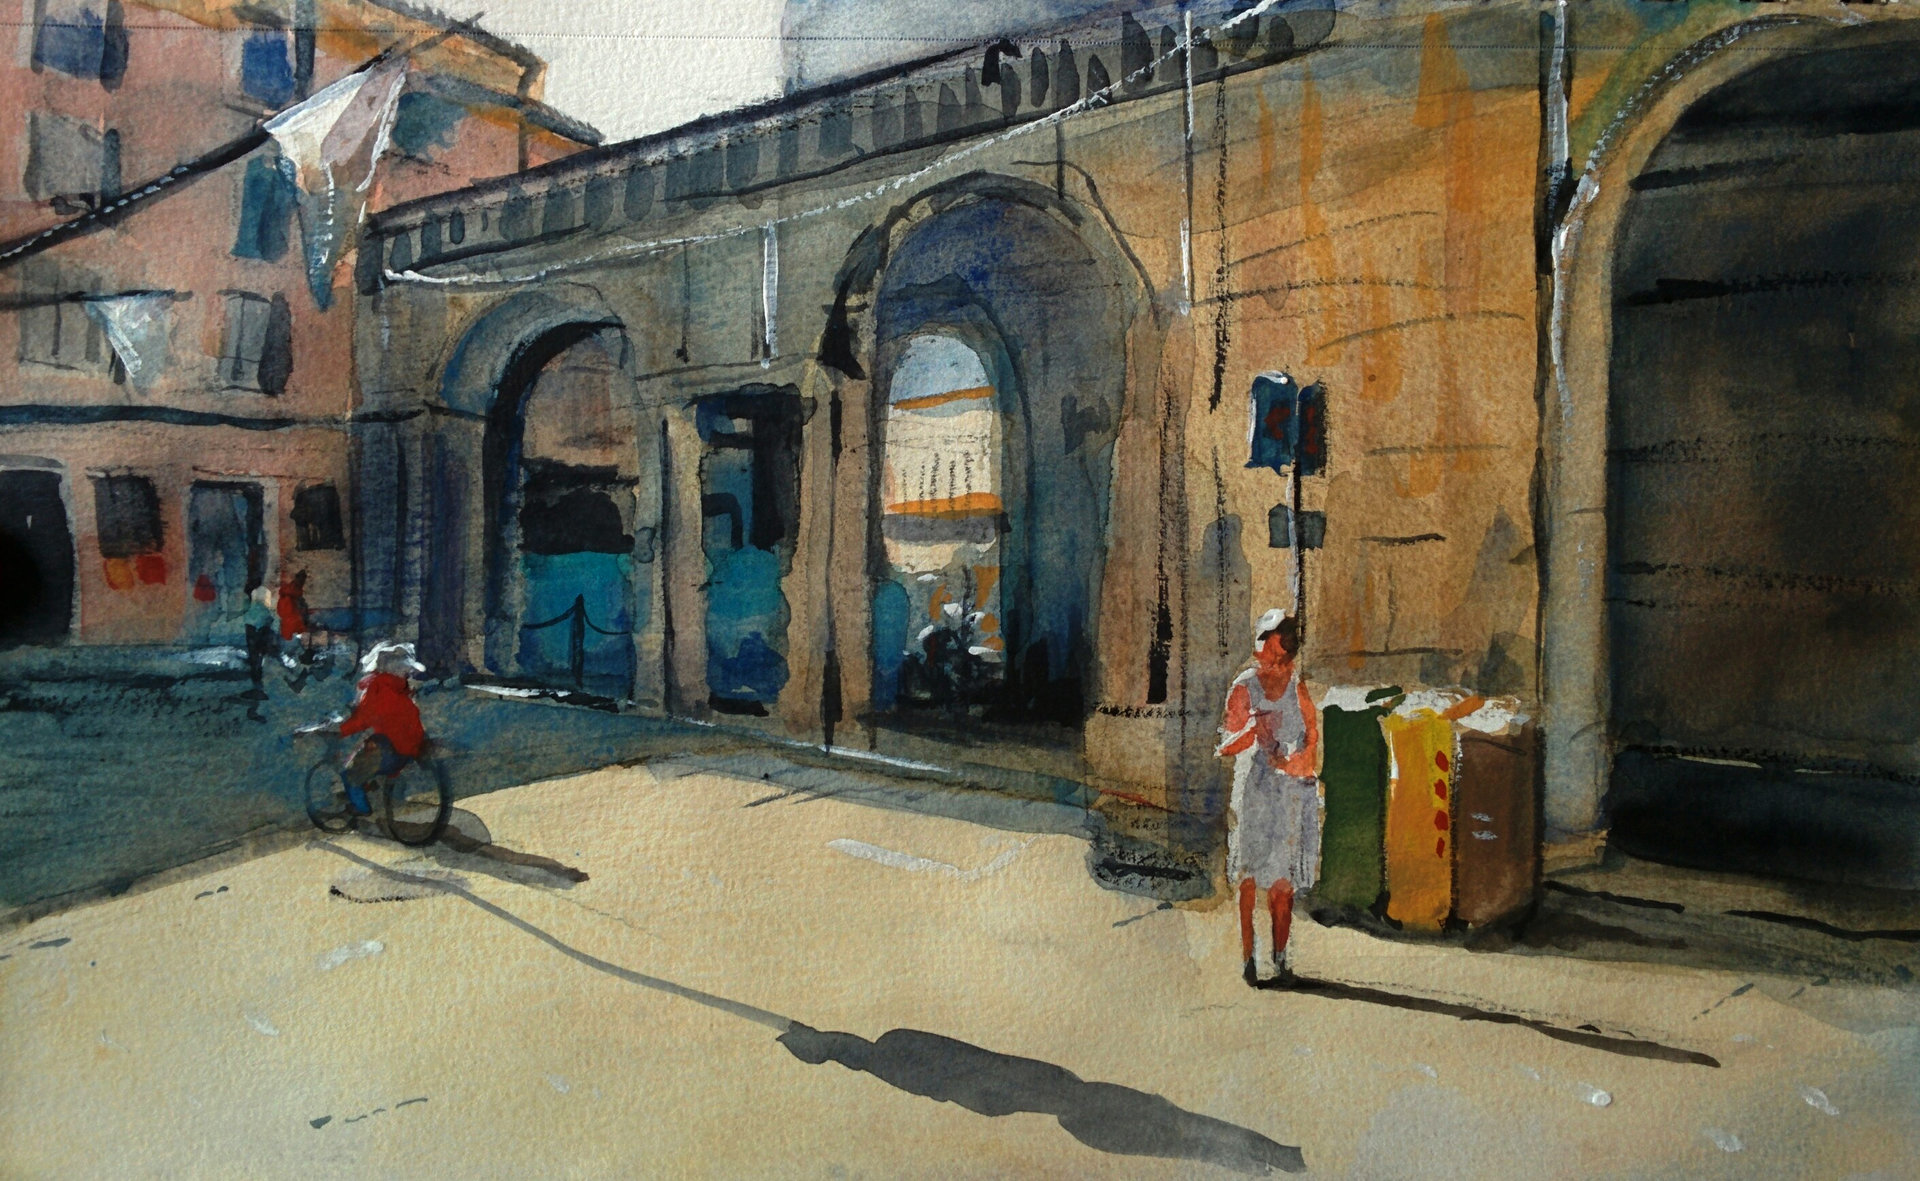 paolo-giandoso-watercolor-04.jpg